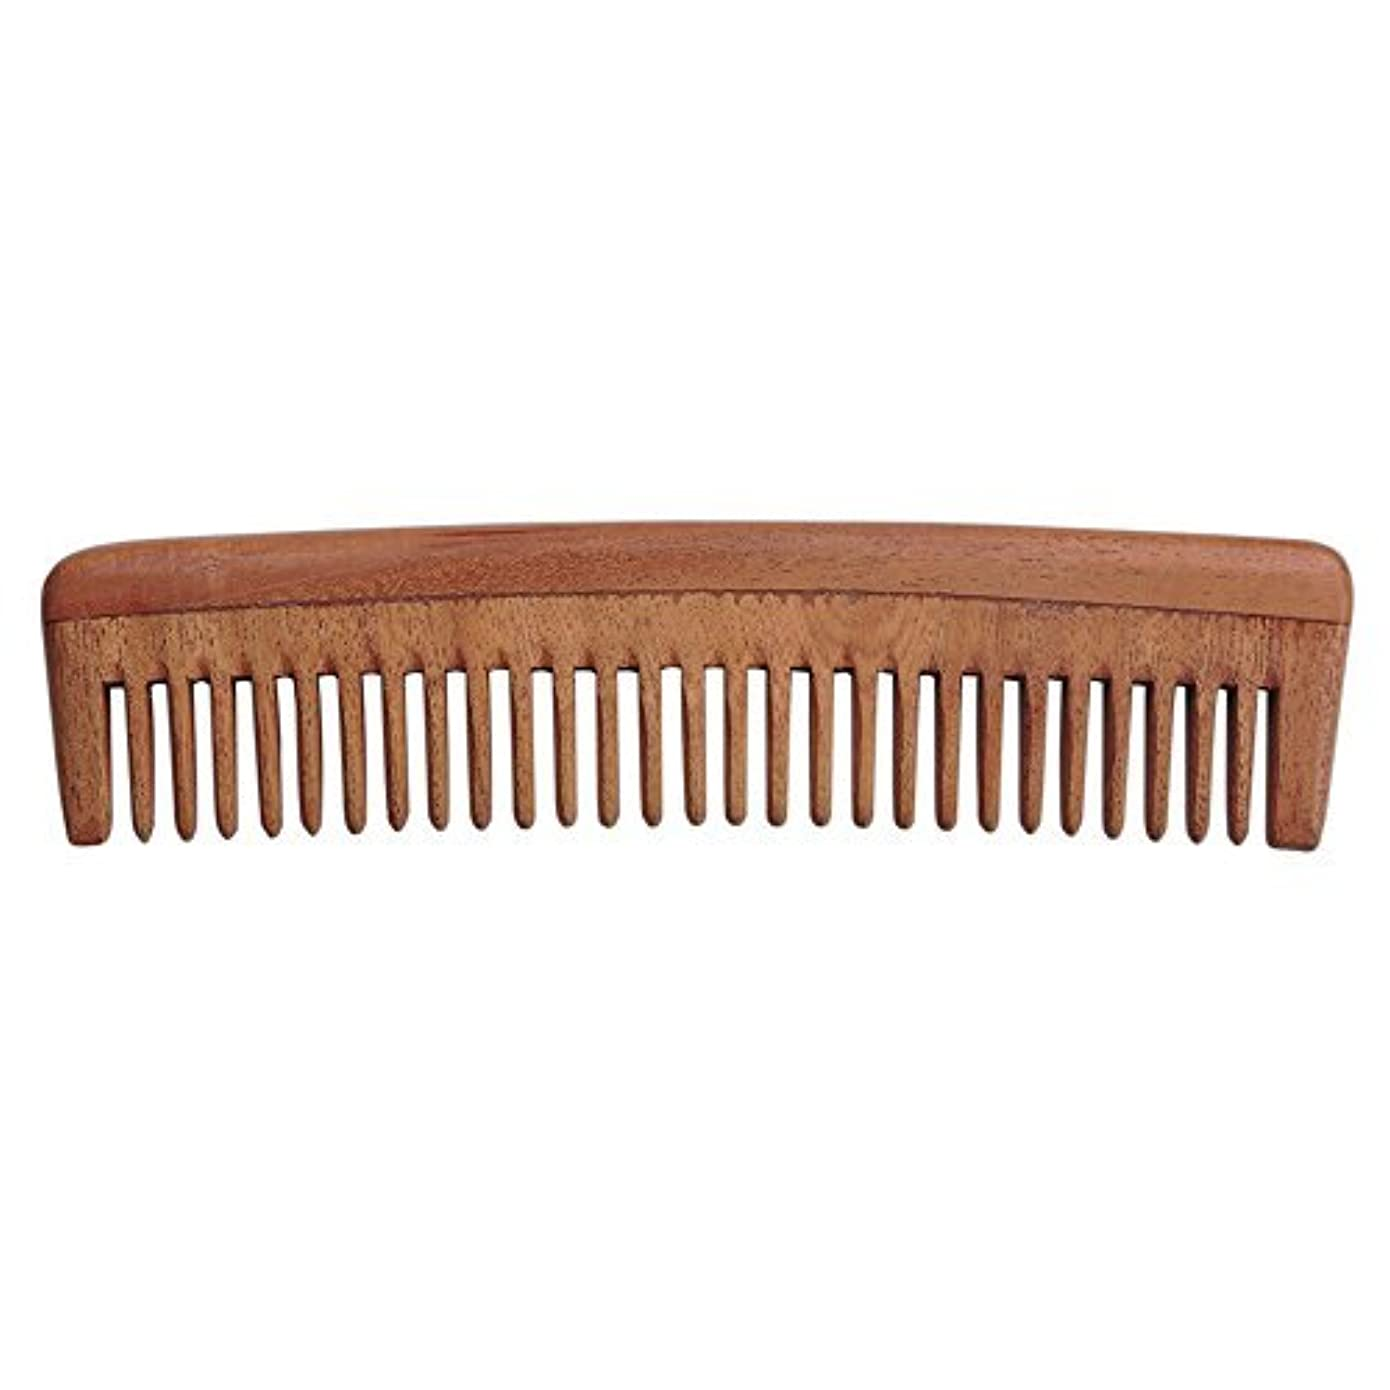 HealthGoodsIn - Pure Neem Wood Wide Tooth Comb for Shiny Hair | Wide Tooth Comb | Natural and Organic for Hair...